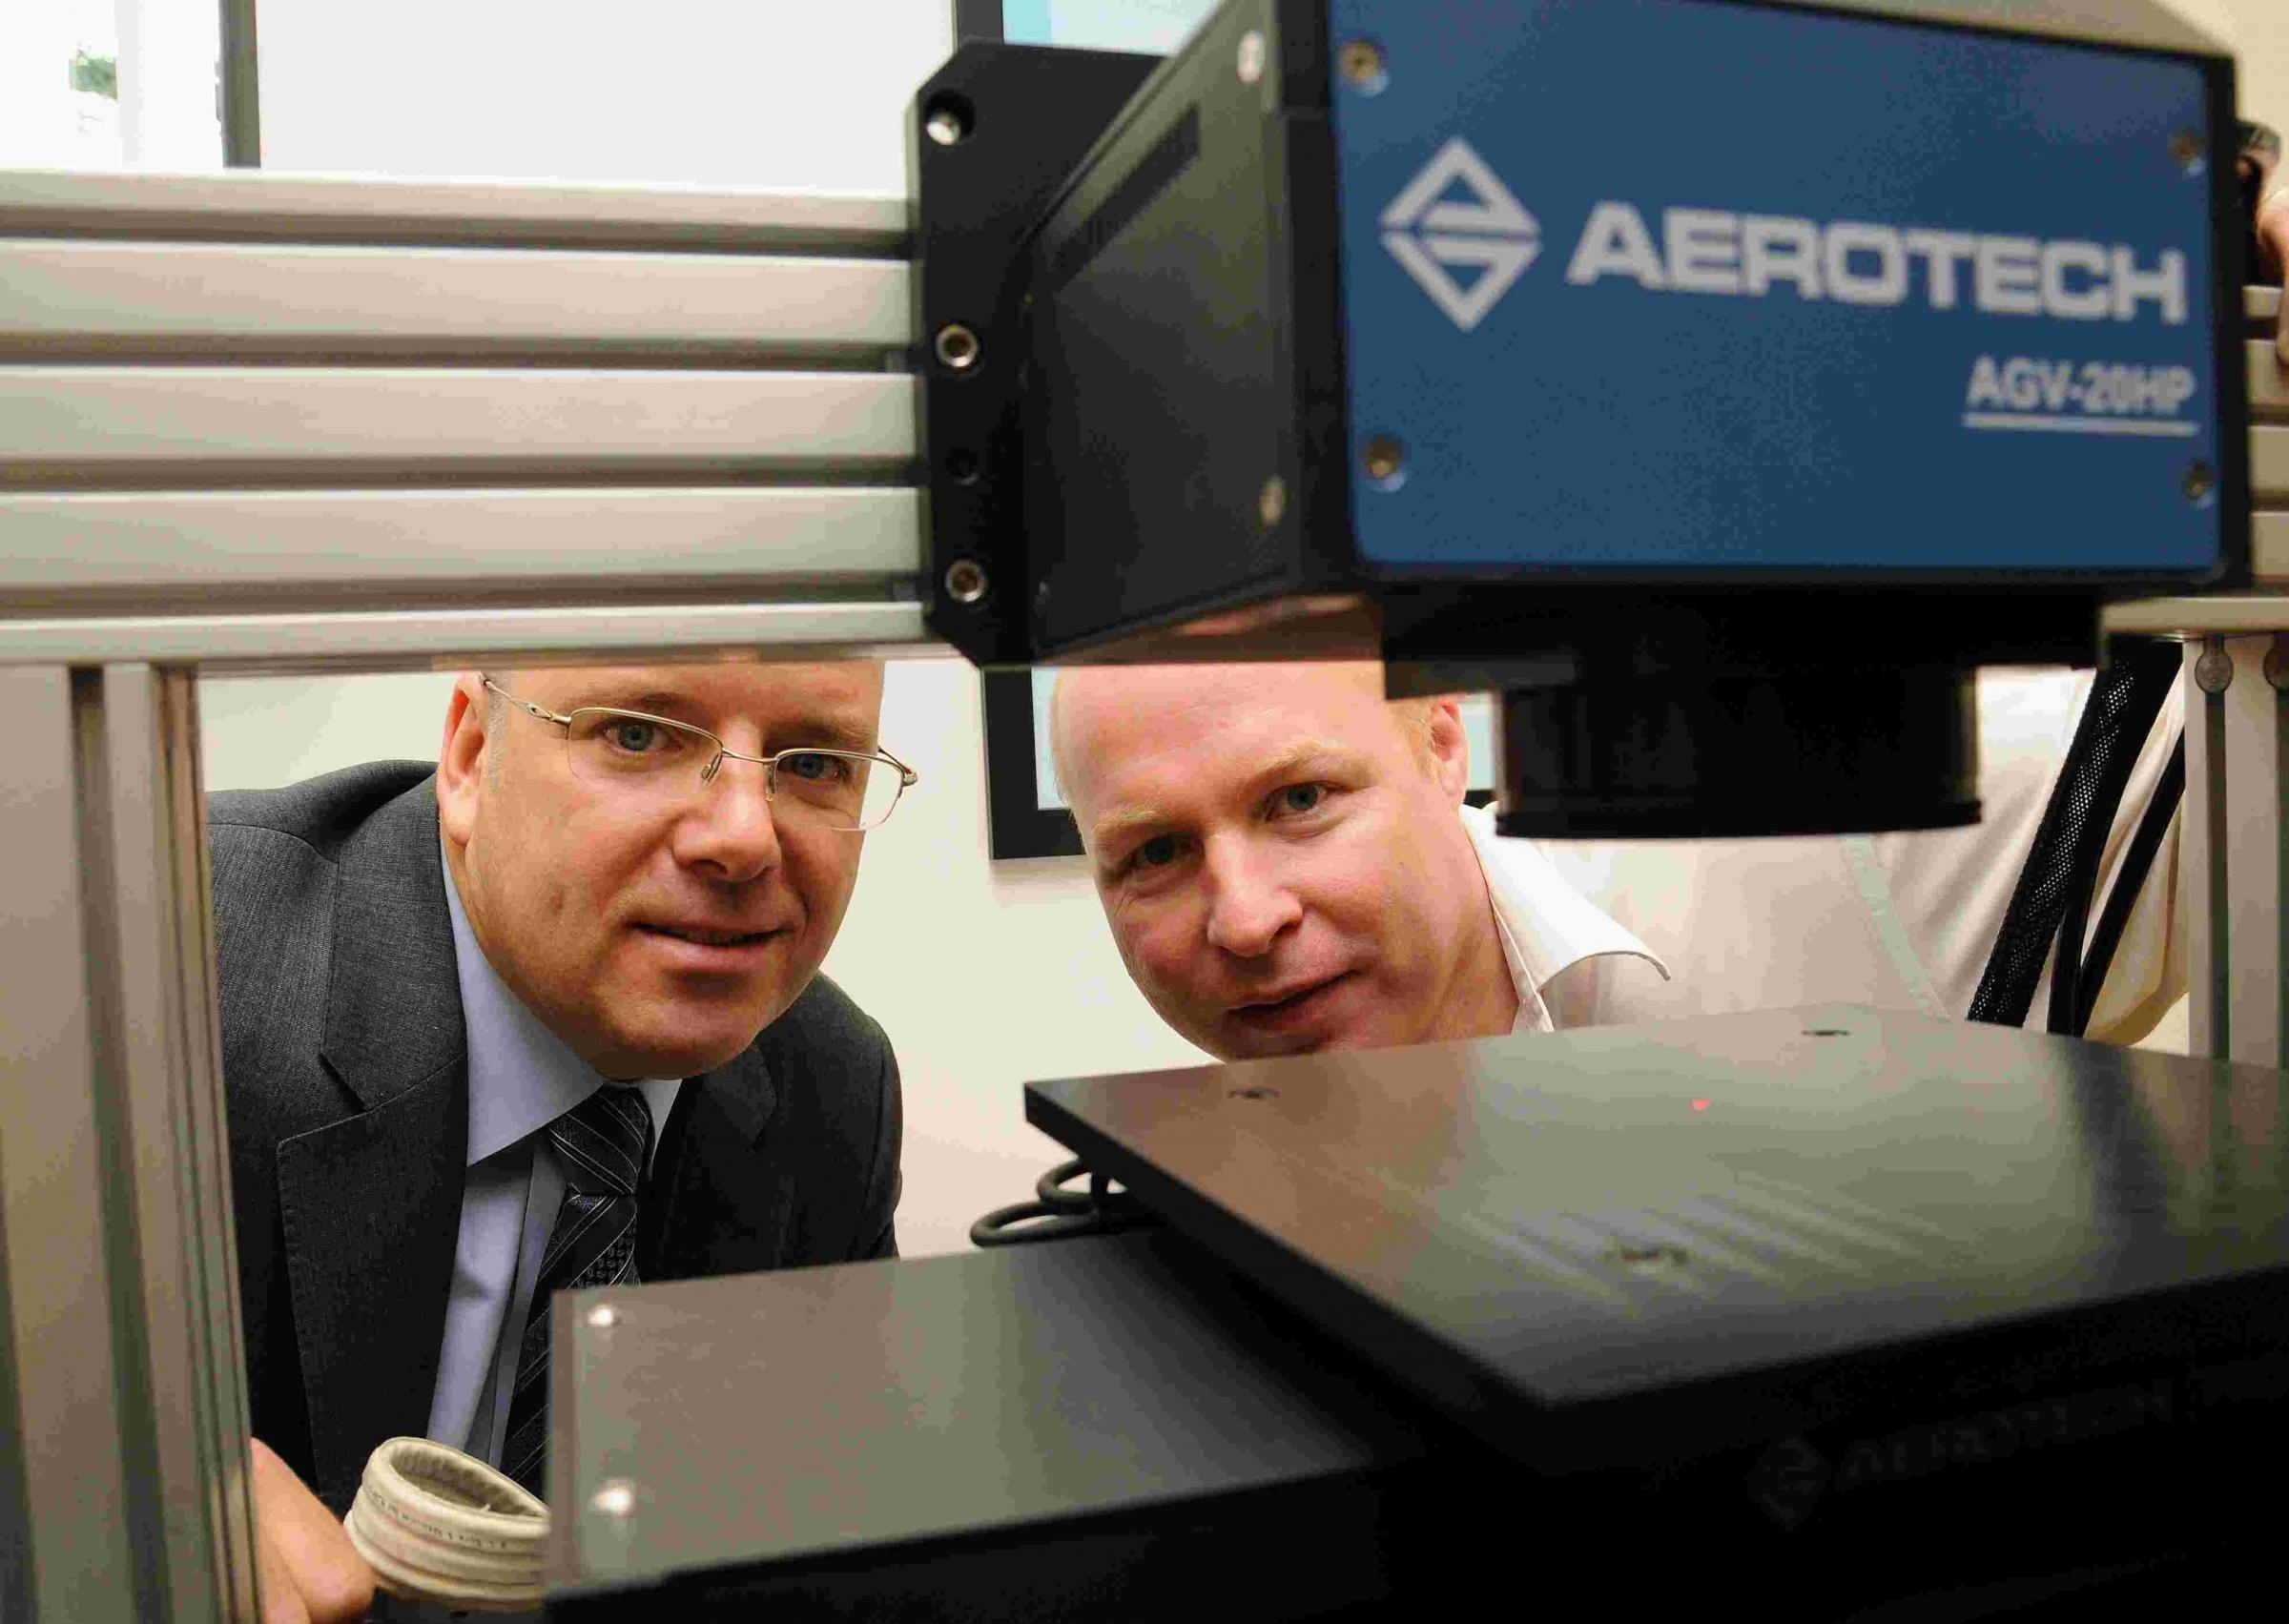 Aerotech moves to Ramsdell with precision